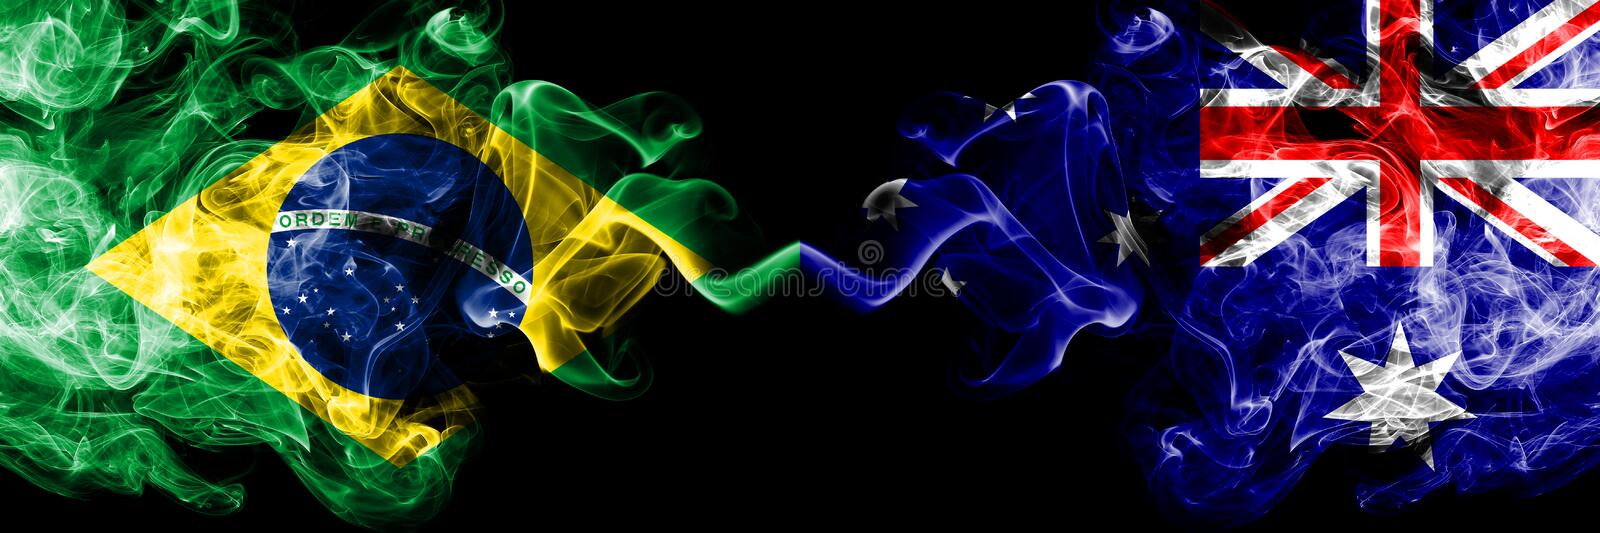 Brazil vs Australia, Australian smoke flags placed side by side. Thick colored silky smoke flags of Brazilian and Australia, vector illustration